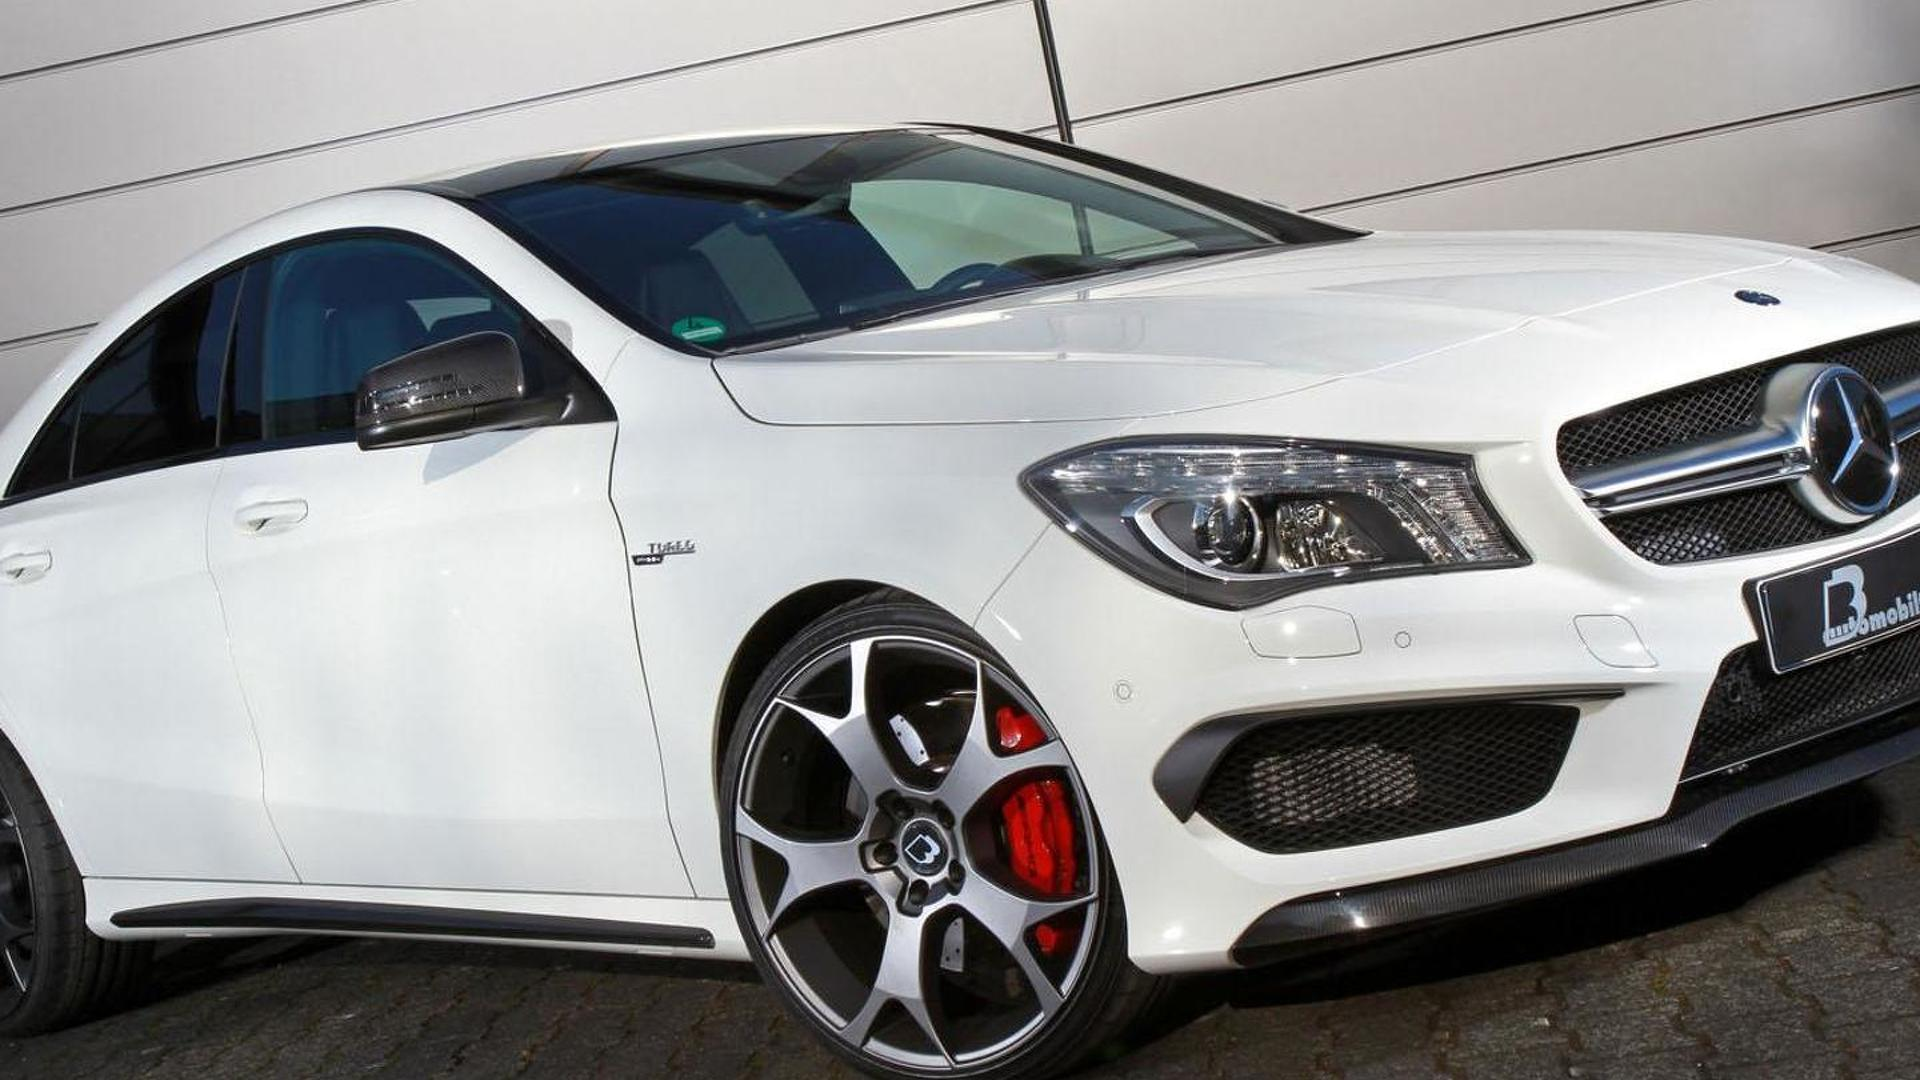 B&B tunes the Mercedes CLA 45 AMG to 450 PS